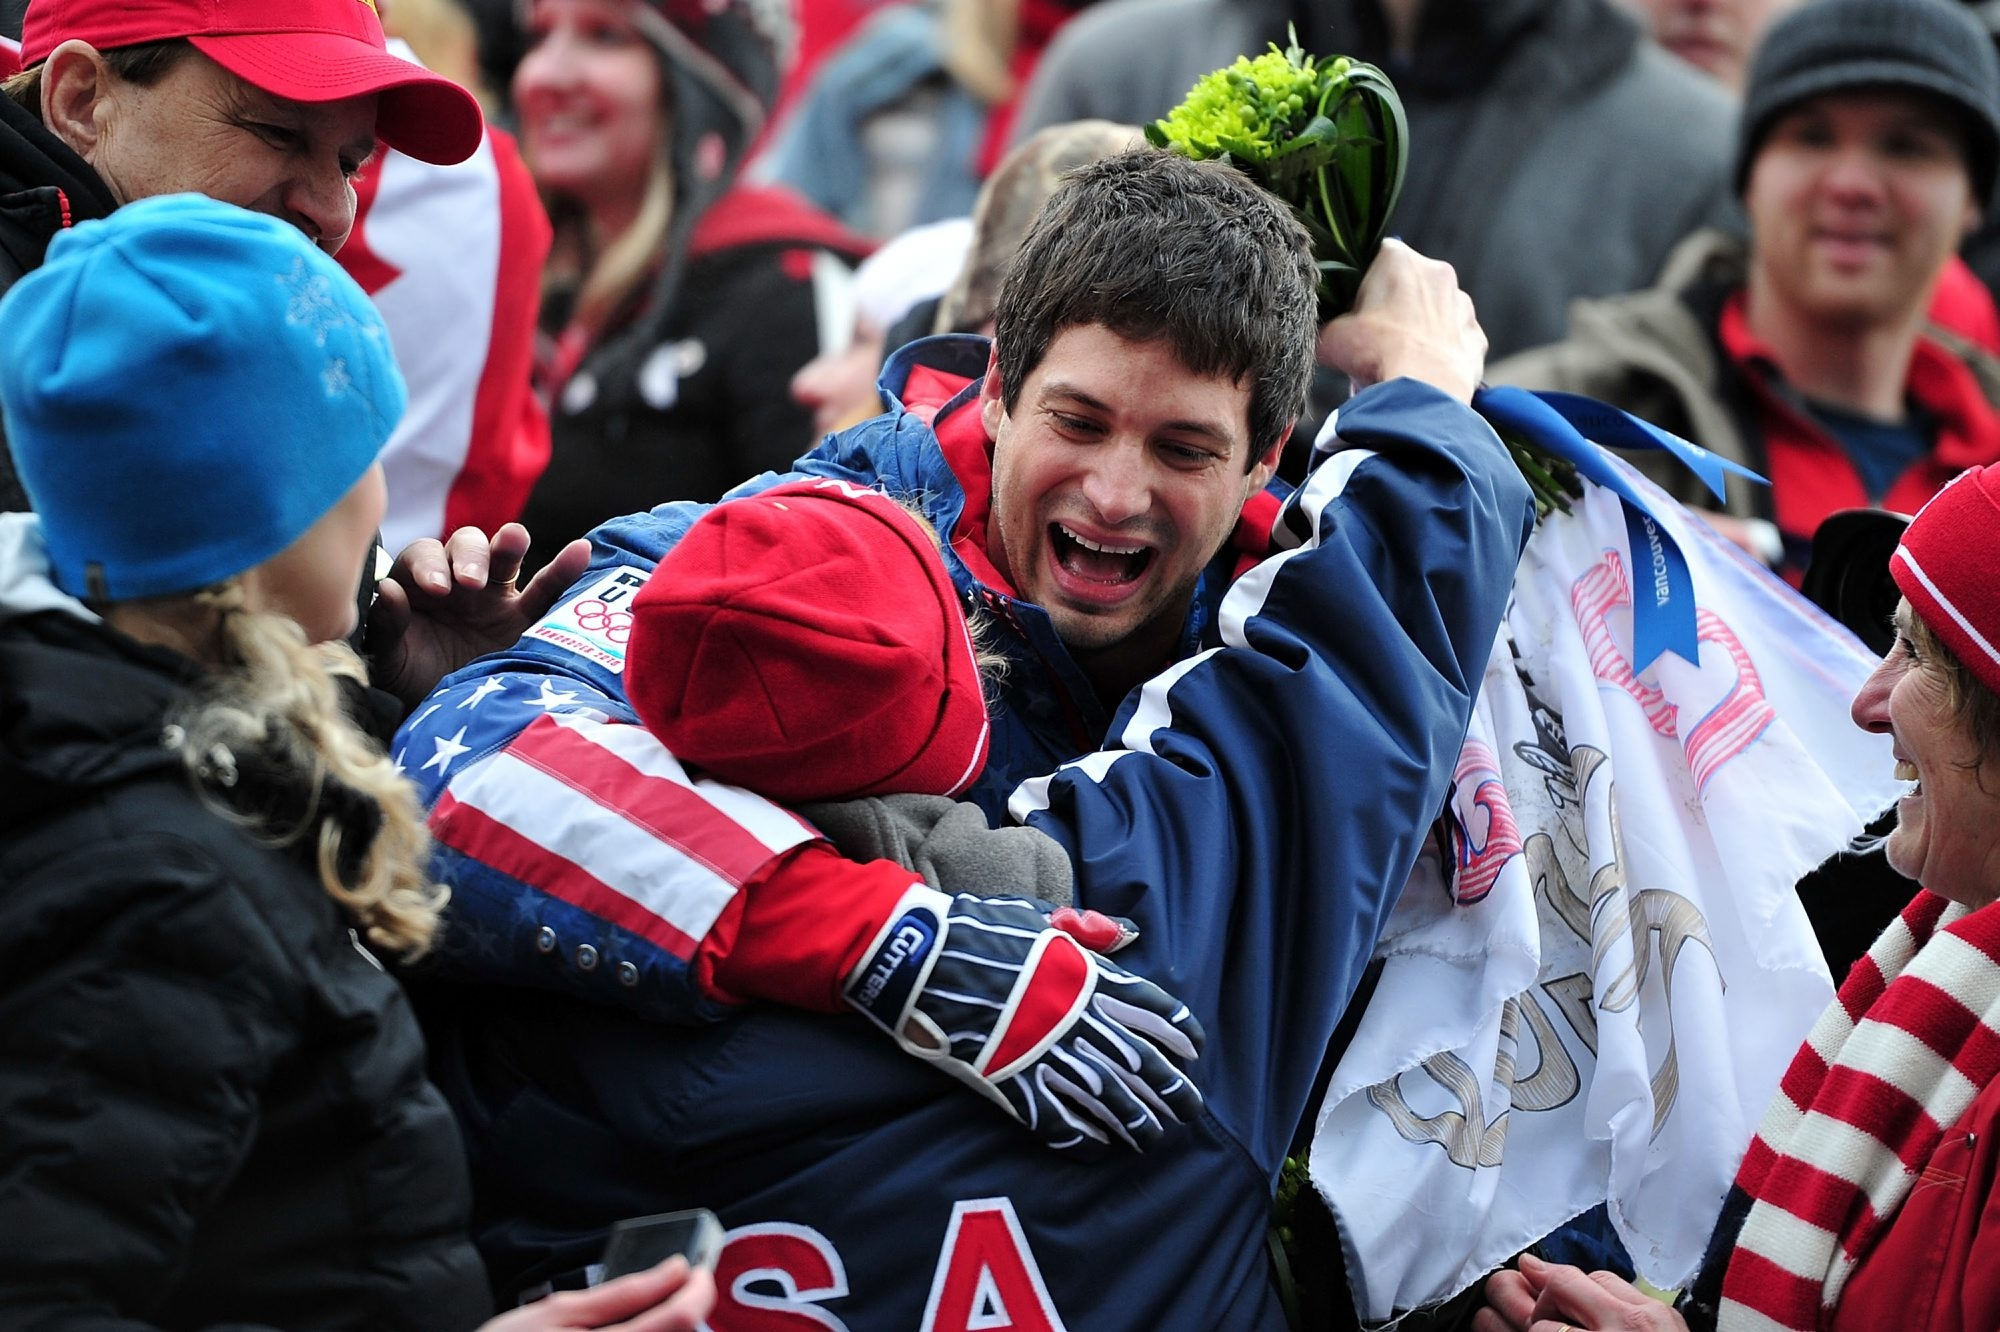 In his third Olympics, Steve Mesler and his teammates won gold in the four-man bobsled at the 2010 Games in Vancouver.